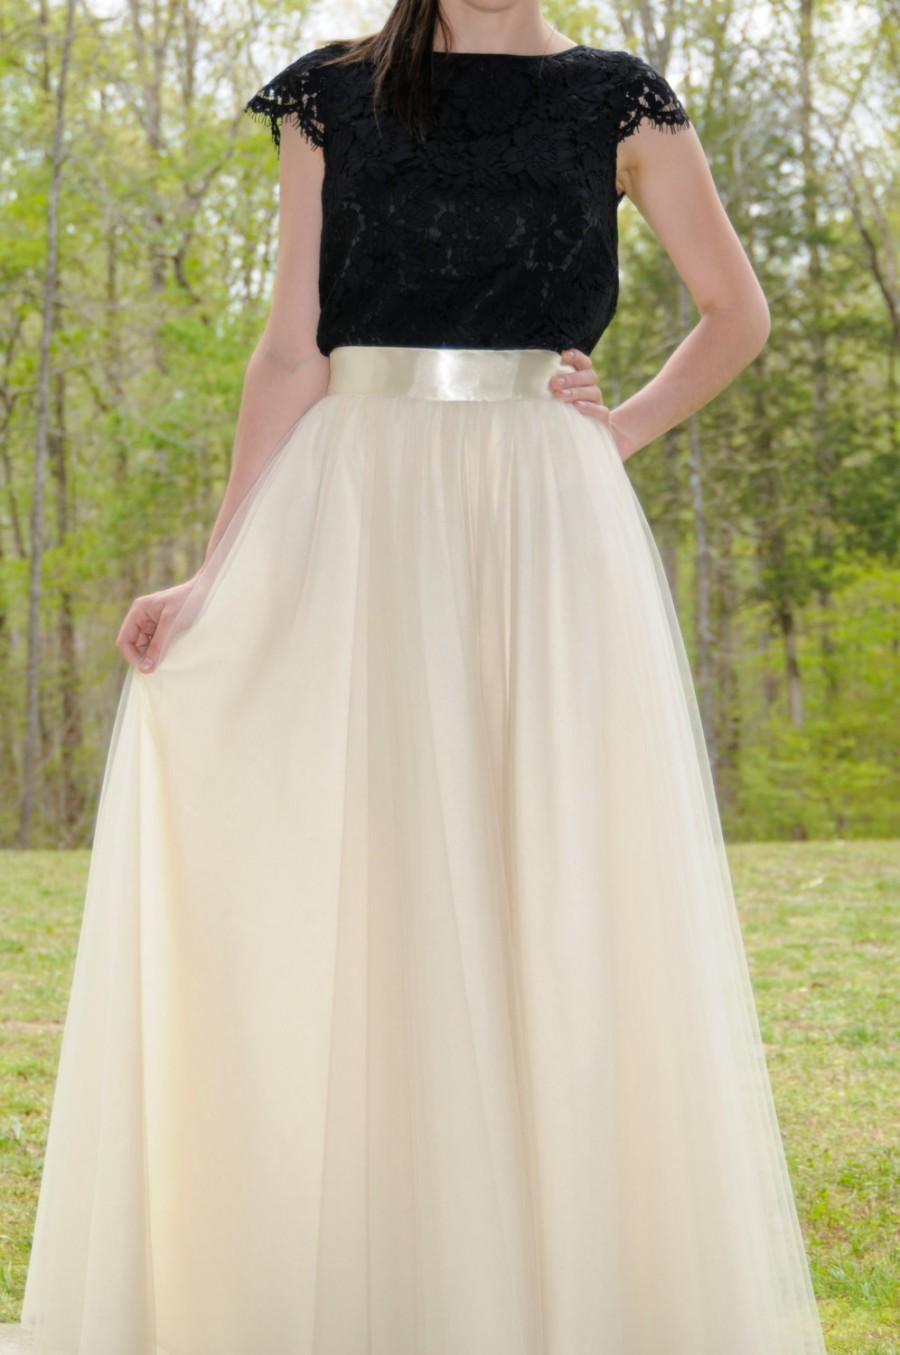 Mariage - Maxi Circle Tulle Skirt,Premium Quality Tulle,Soft Tulle skirt,Adult tulle skirt,custom made tulle skirt from my FabBoutique!